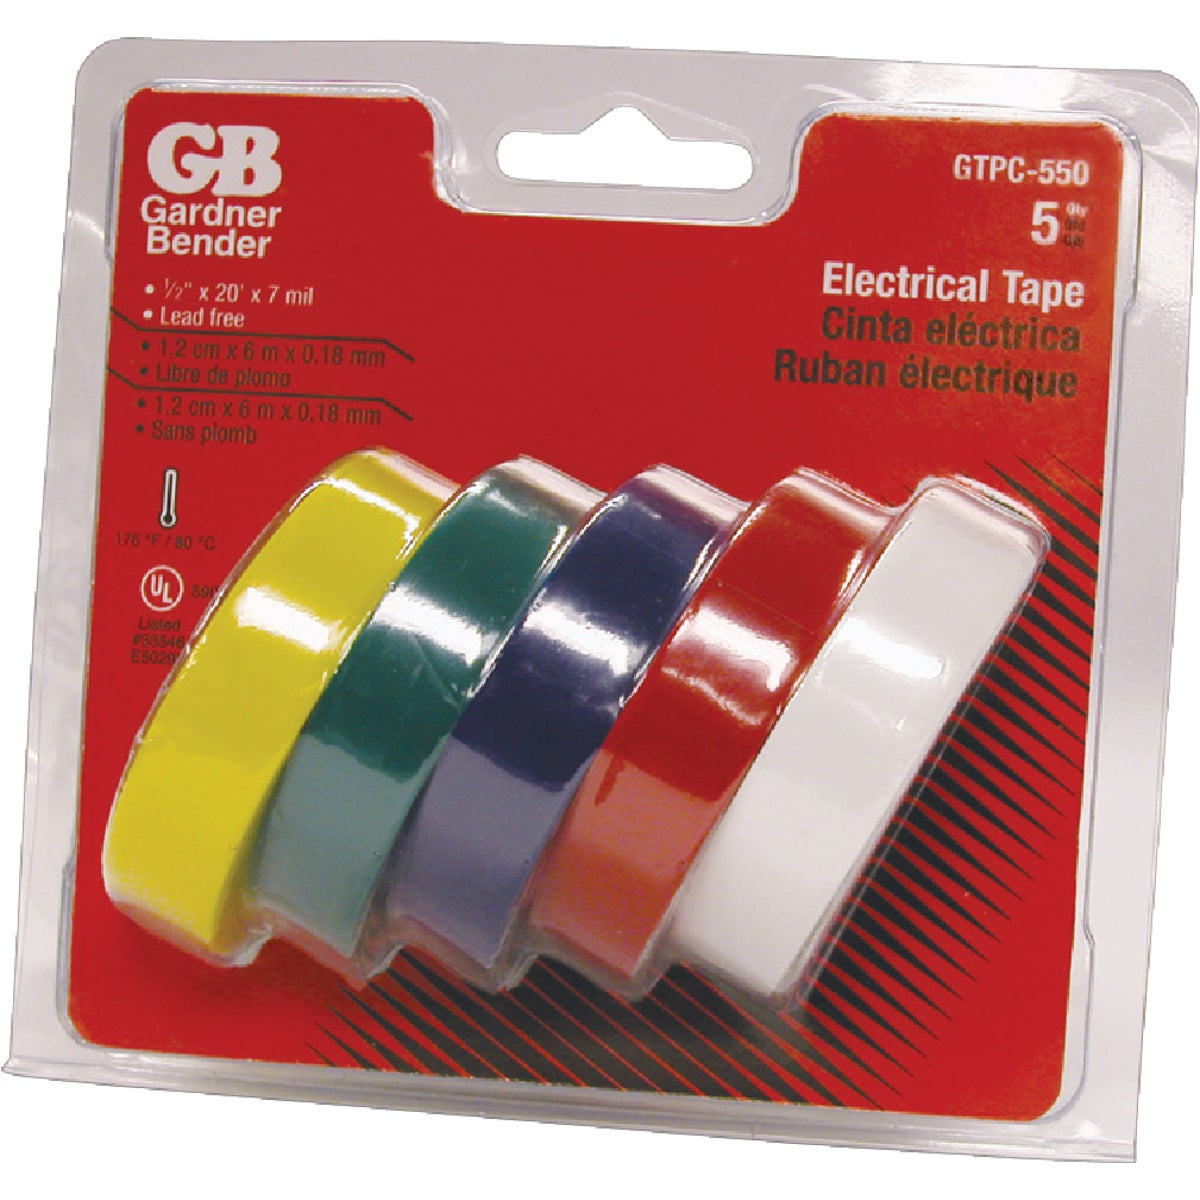 5PK COLR ELECTRICAL TAPE - GTPC-550 by G B Electrical Inc